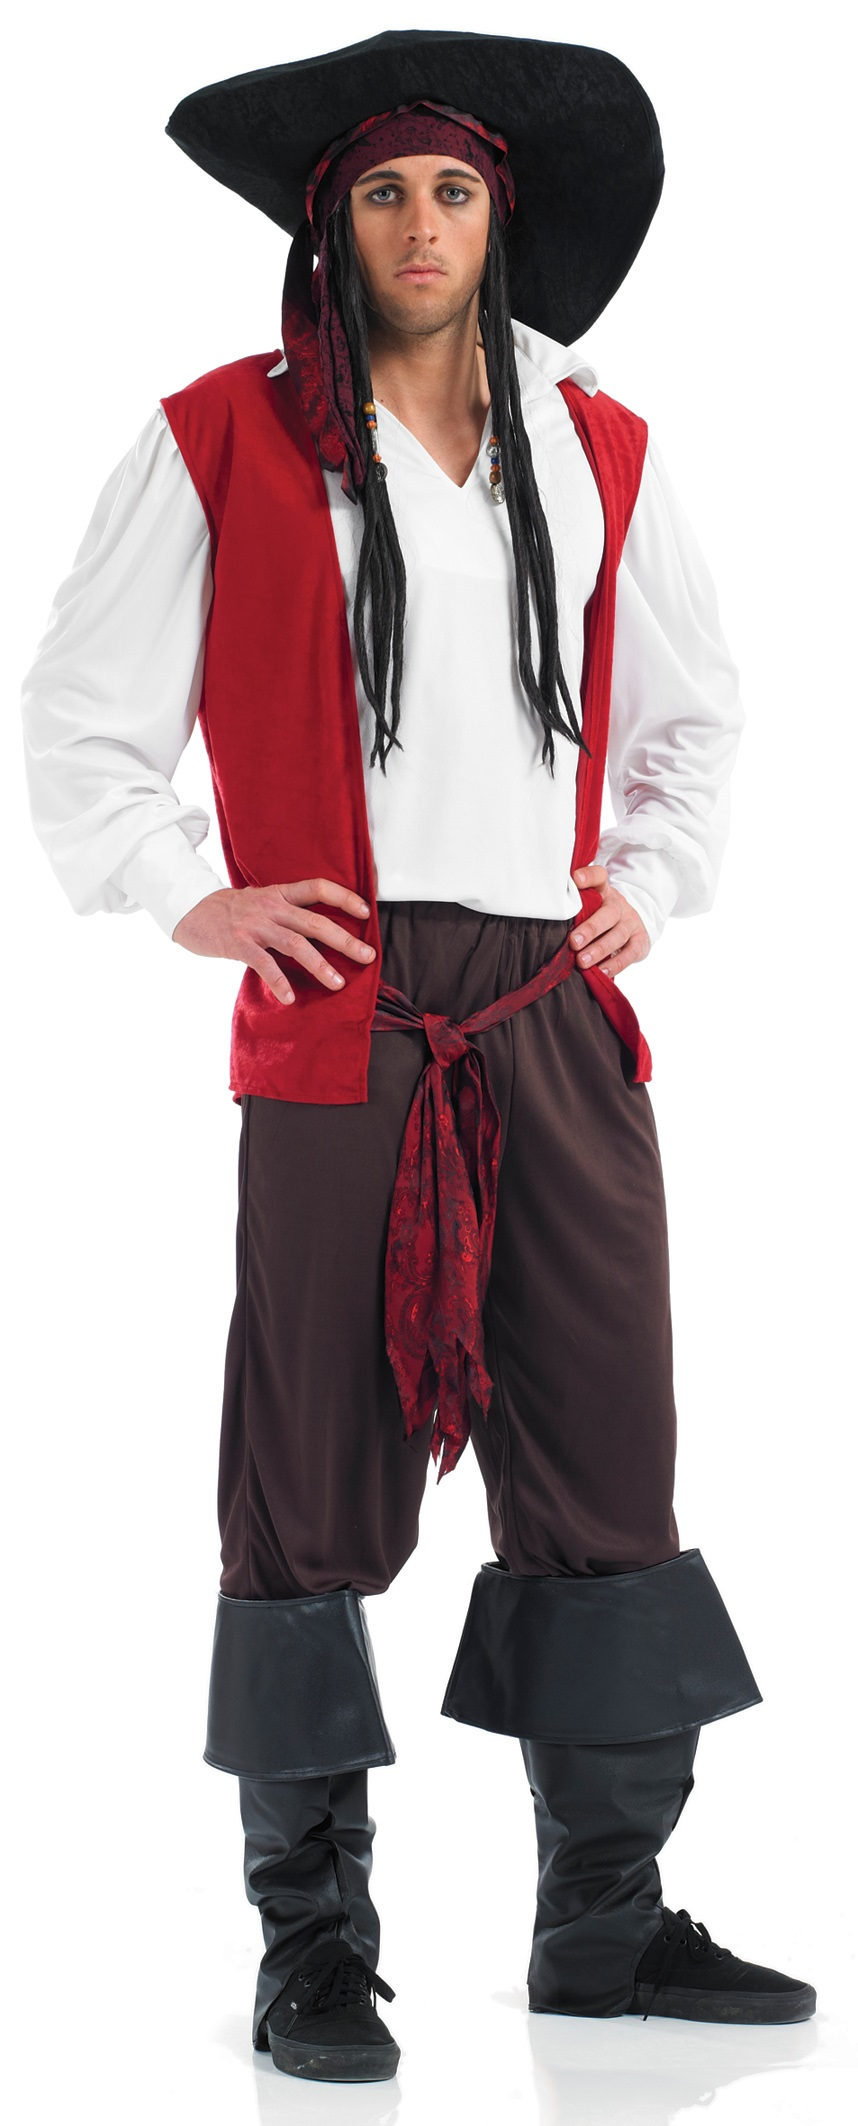 XL Pirate Mman costume- XL fancy dress costume for men ...